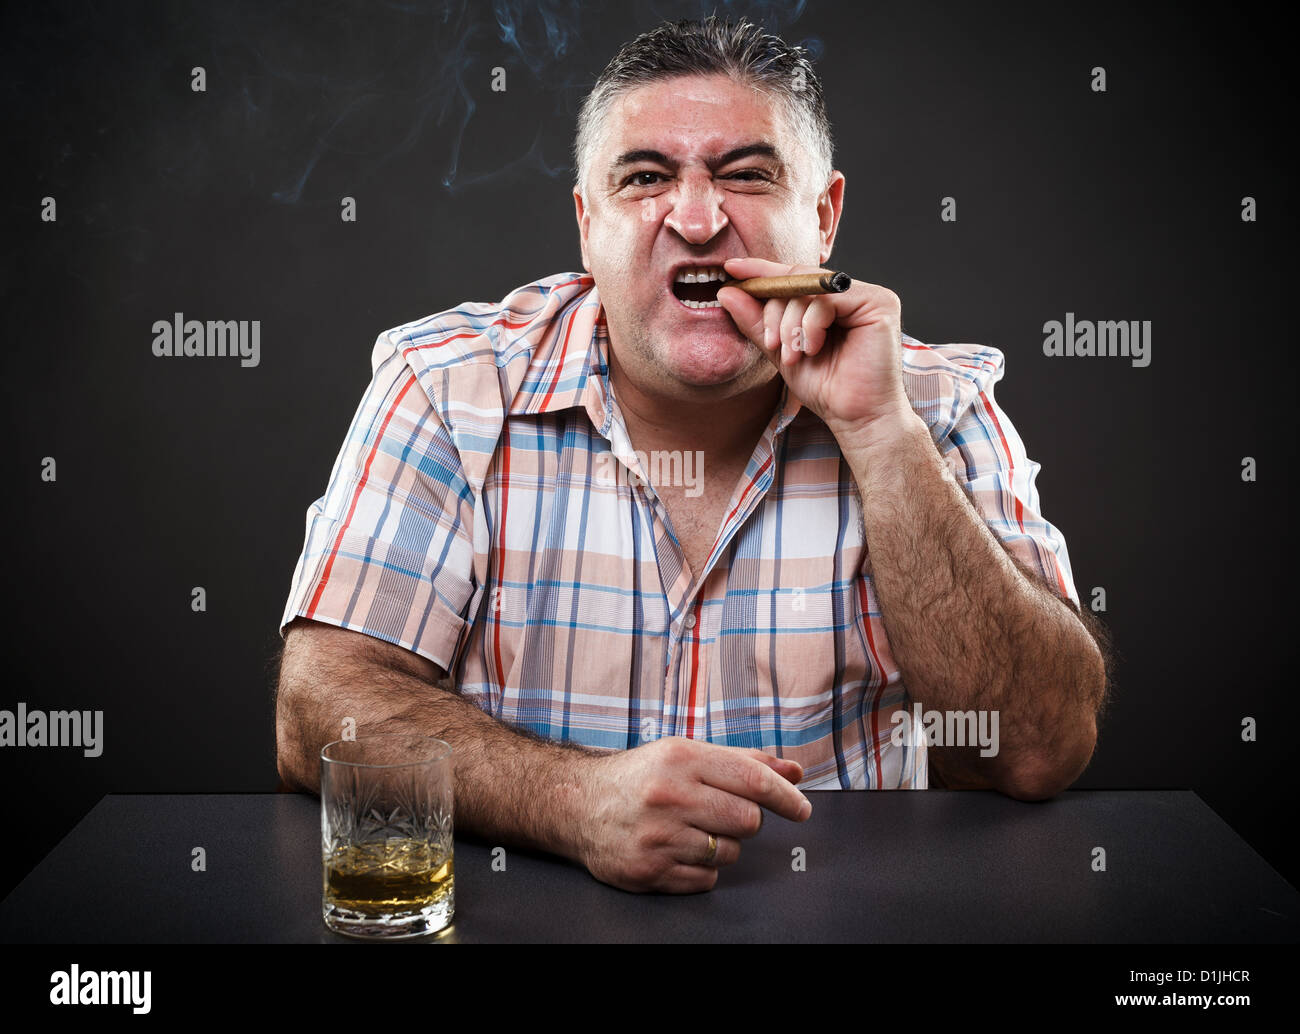 Portrait of a mature mafia man drinking and smoking while sitting at table on gray background - Stock Image